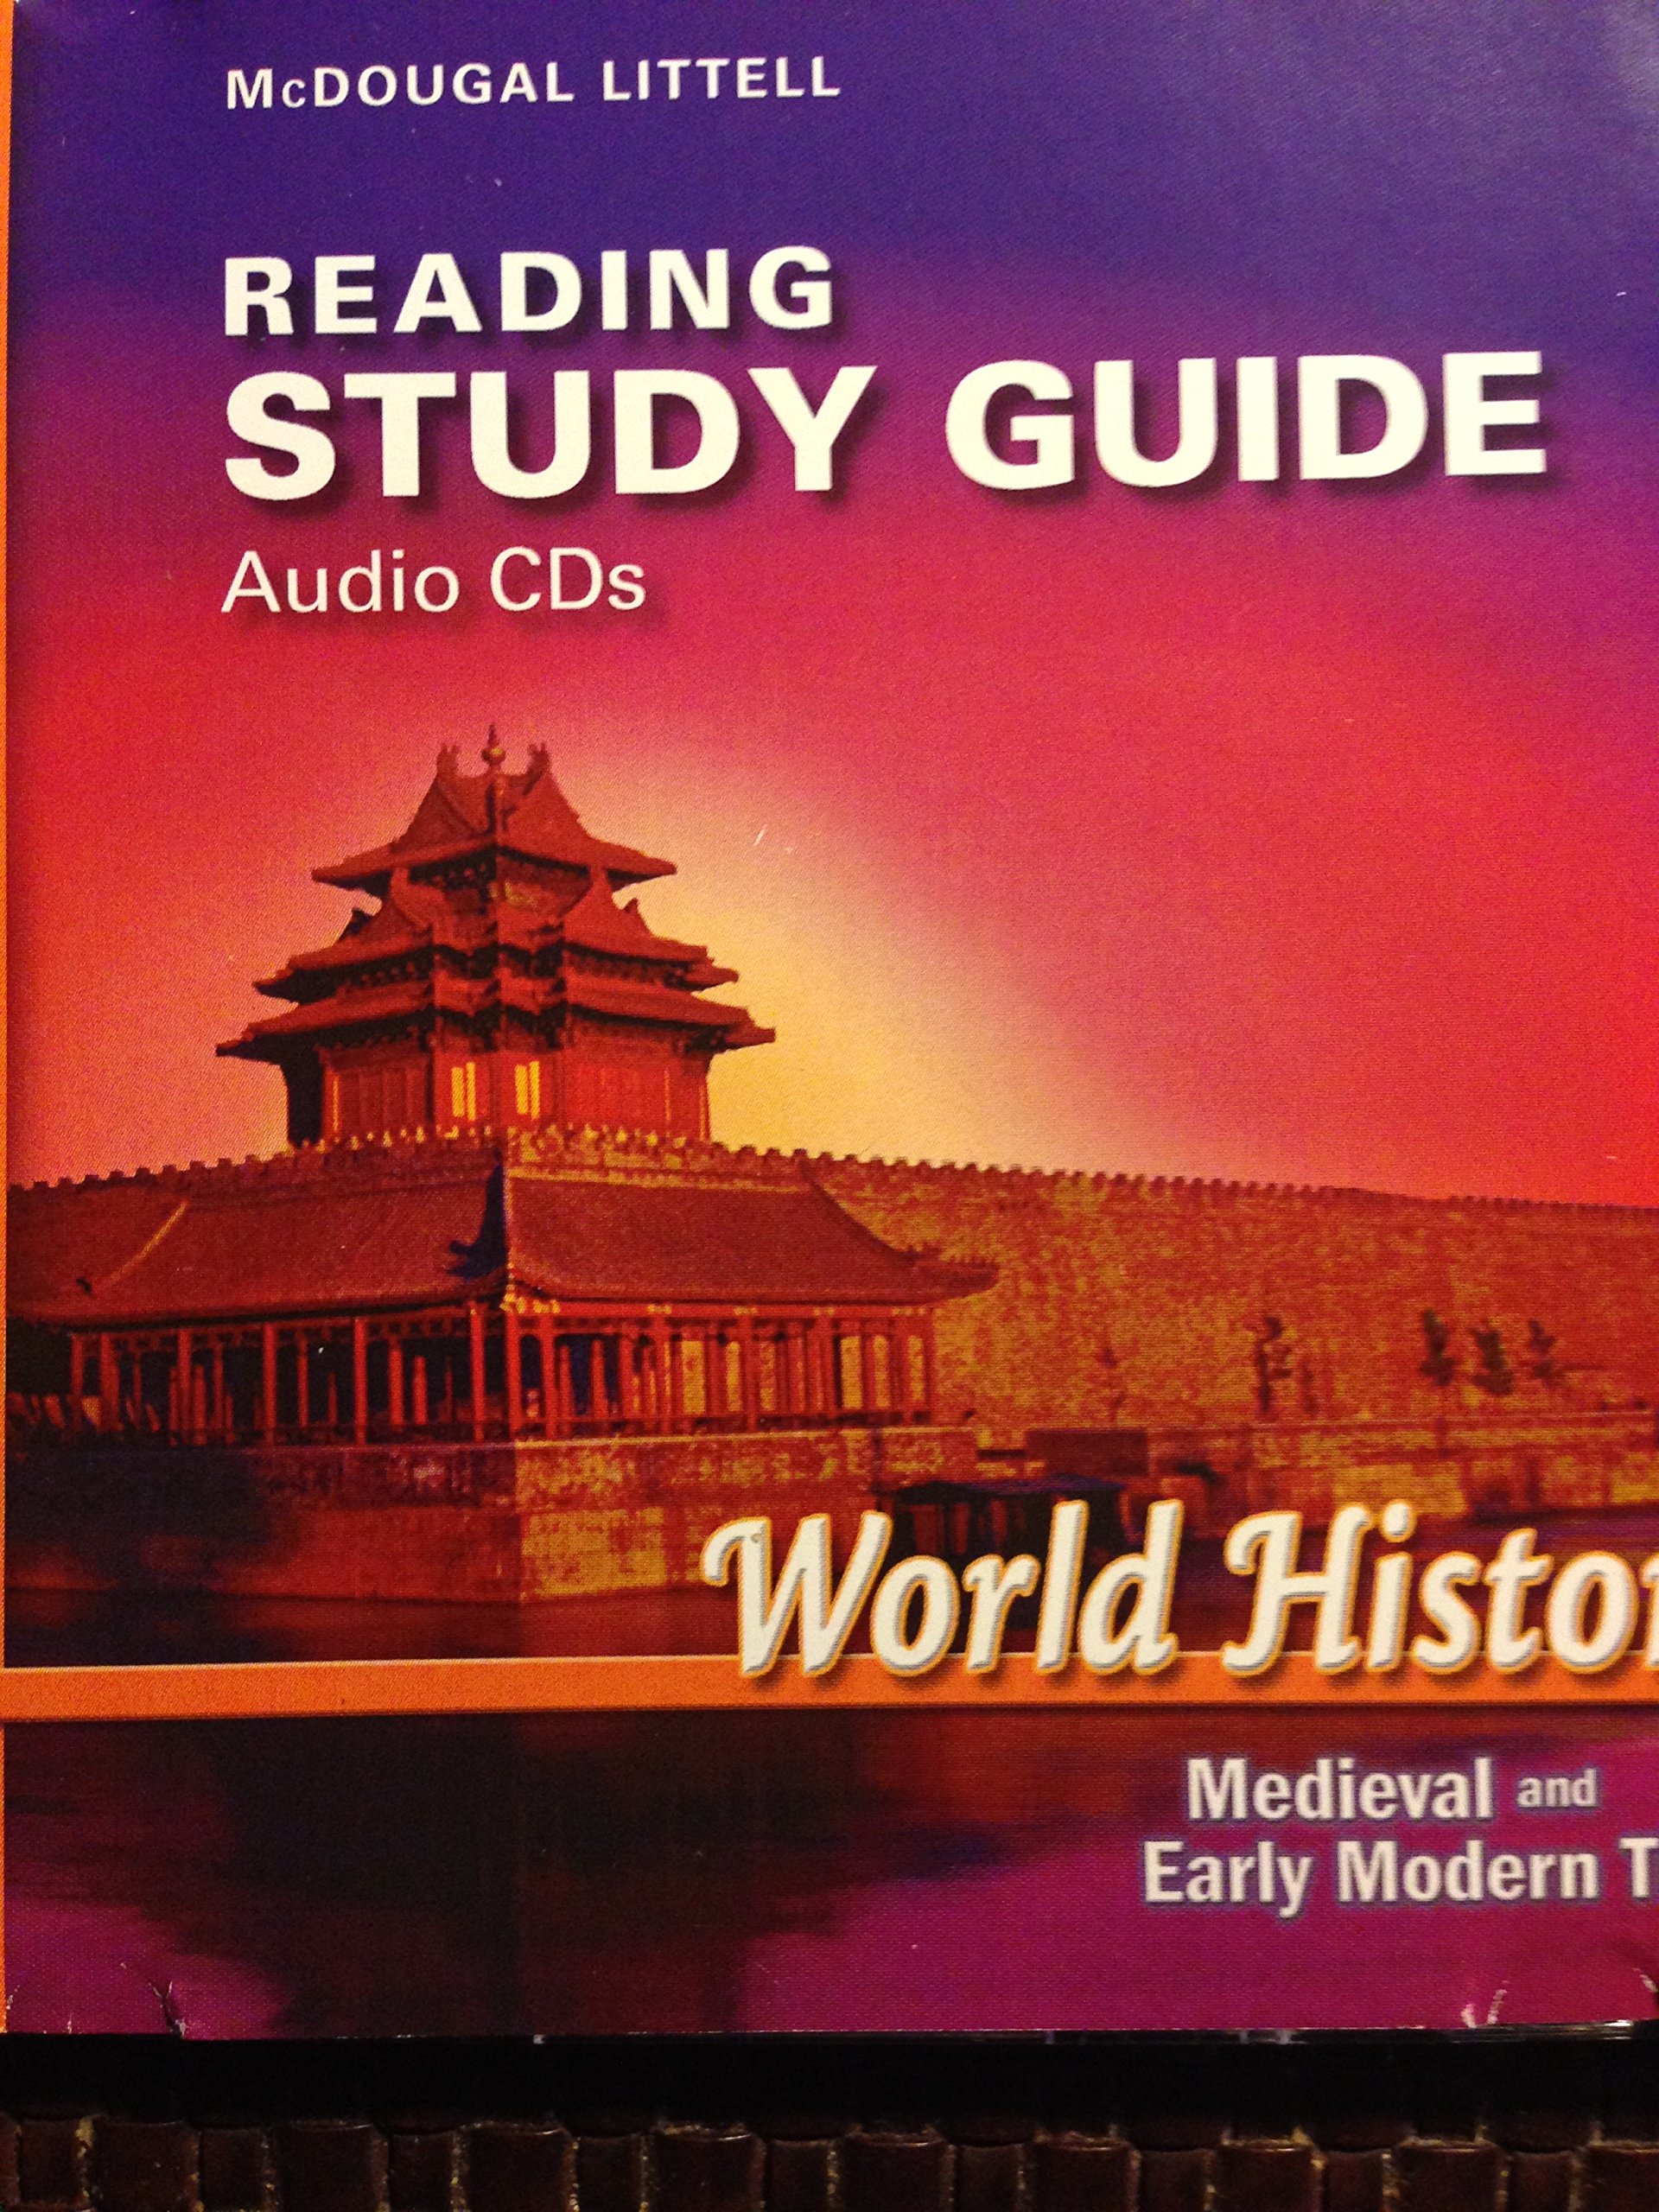 Download McDougal Littell World History: Medieval and Early Modern Times: Reading Study Guide Audio CDs ebook